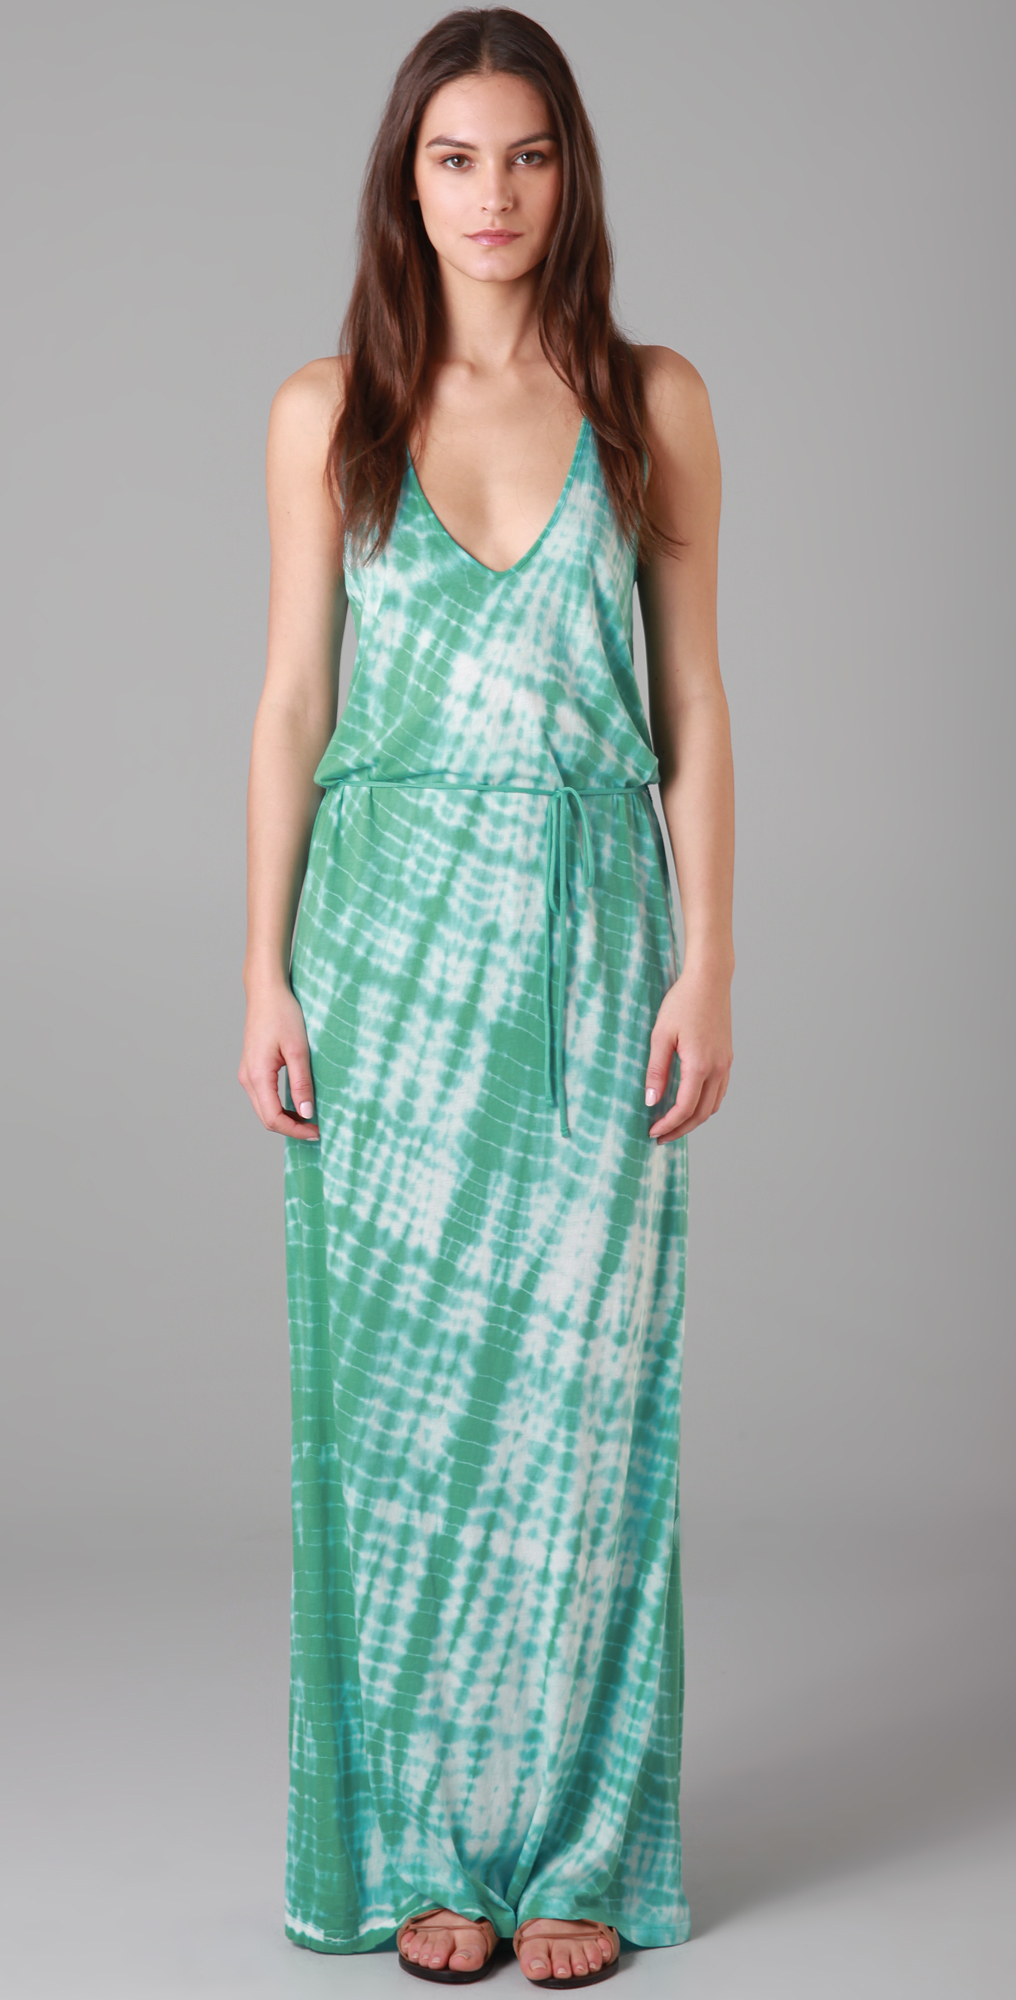 Soft Joie Emilia Tie Dye Maxi Dress Shopbop